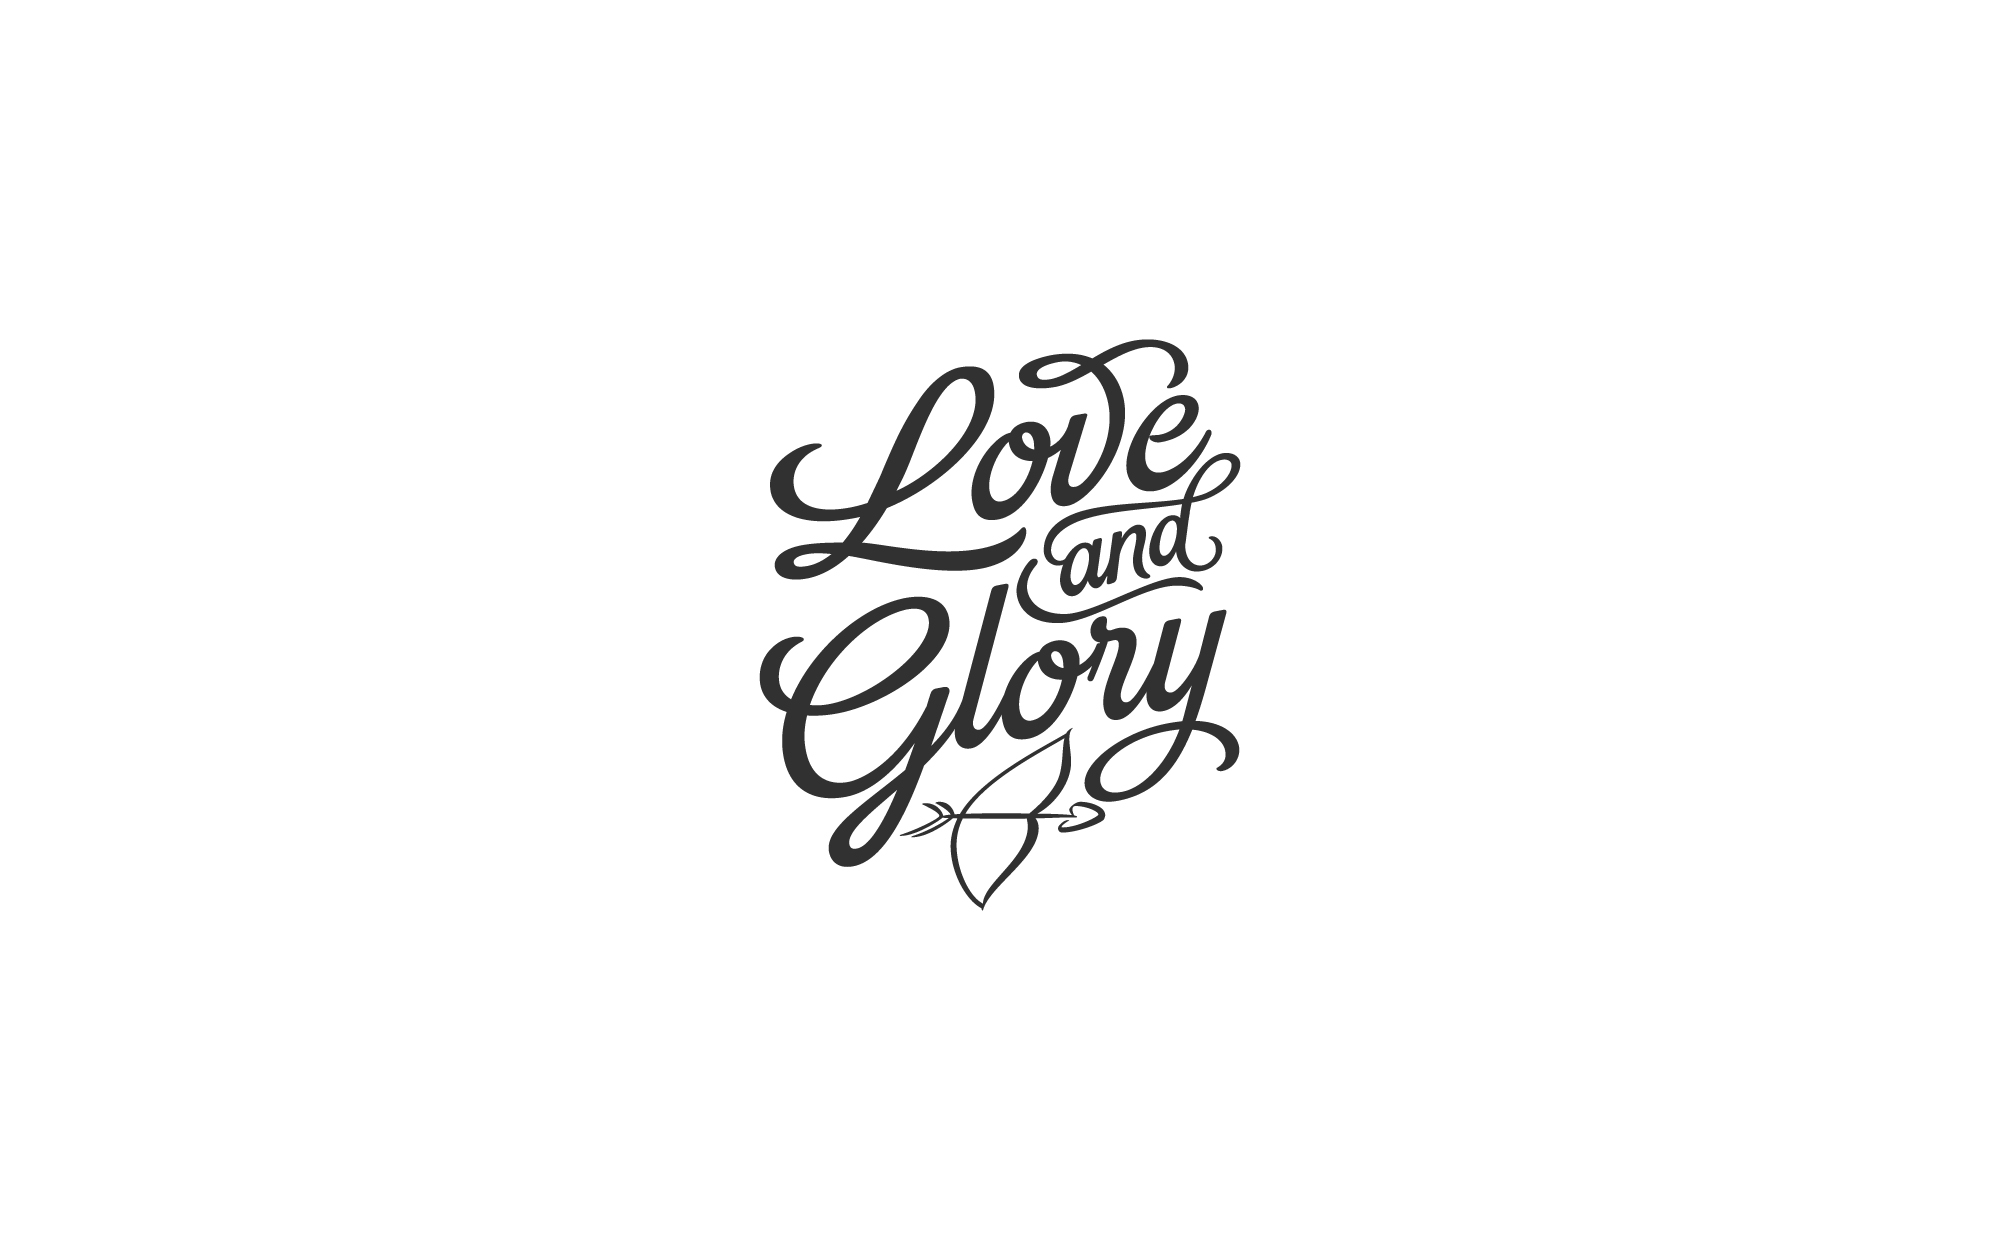 love and glory logo design matthew pomorski